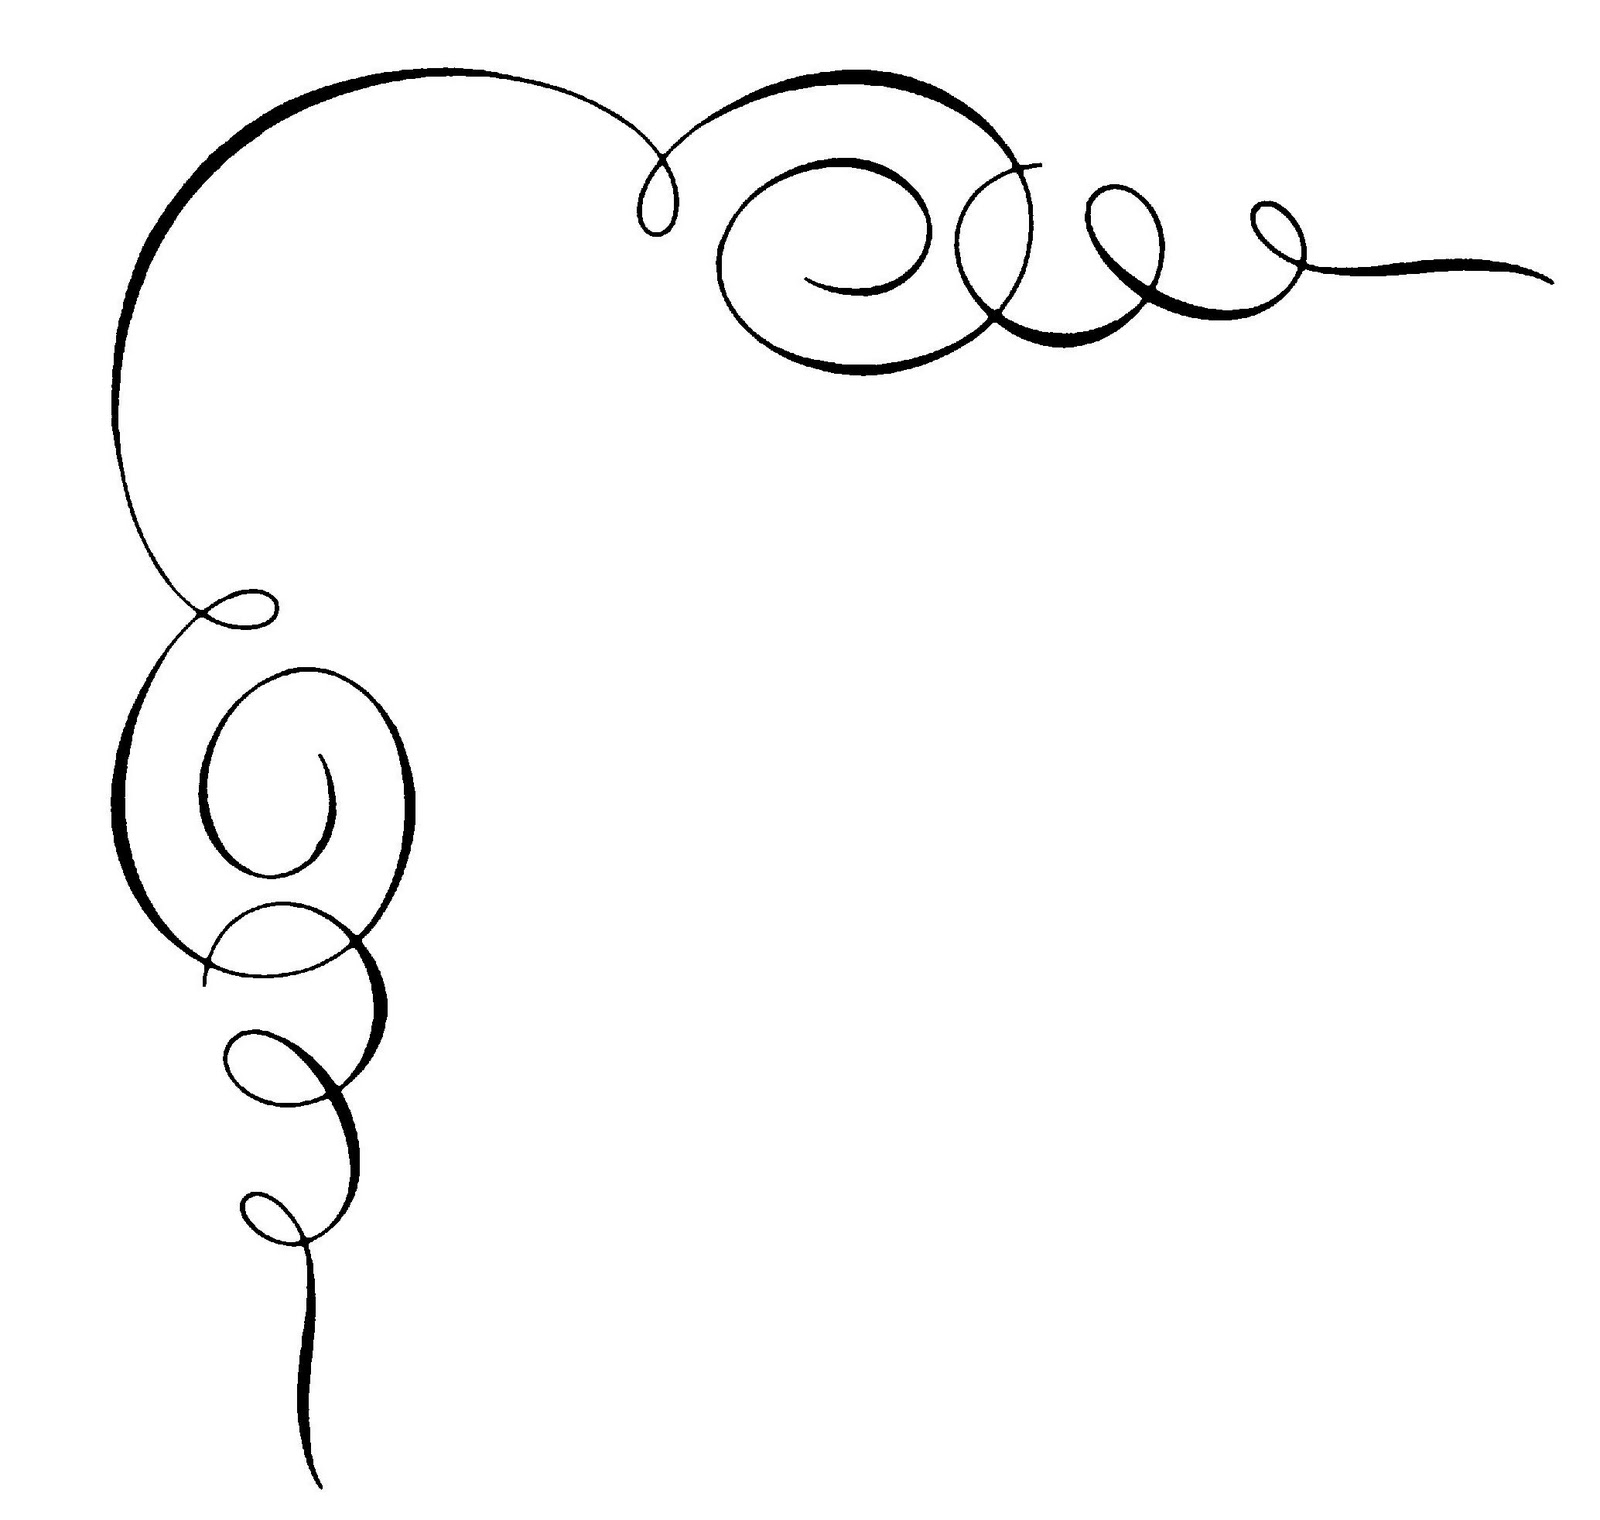 Calligraphy clipart #17, Download drawings